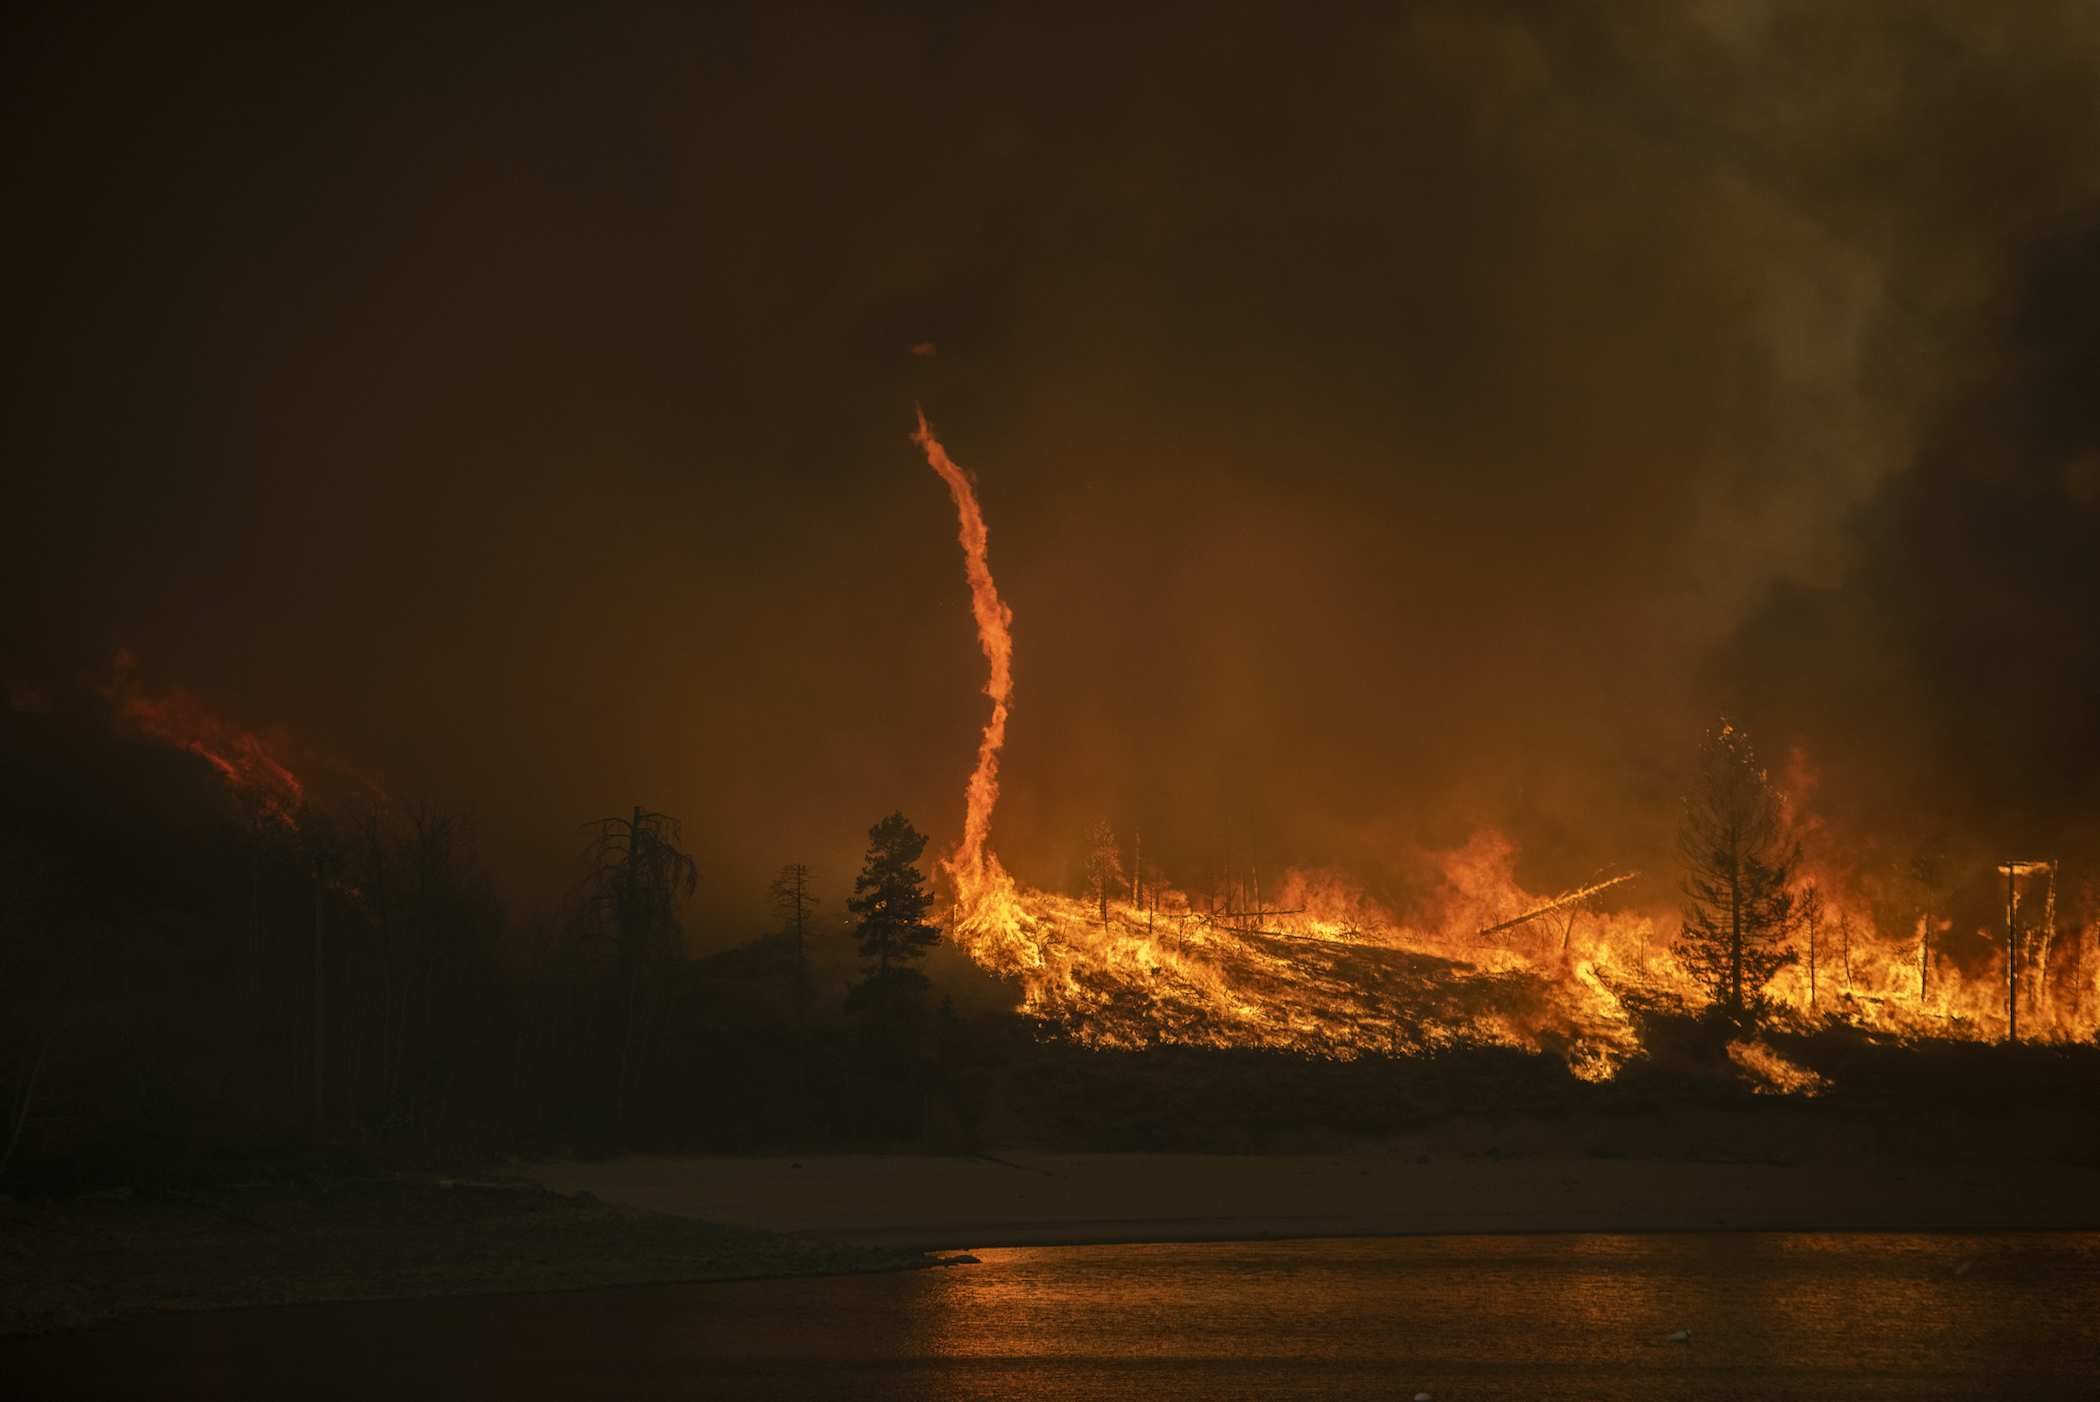 Bipartisan members of Congress launch wildfire caucus